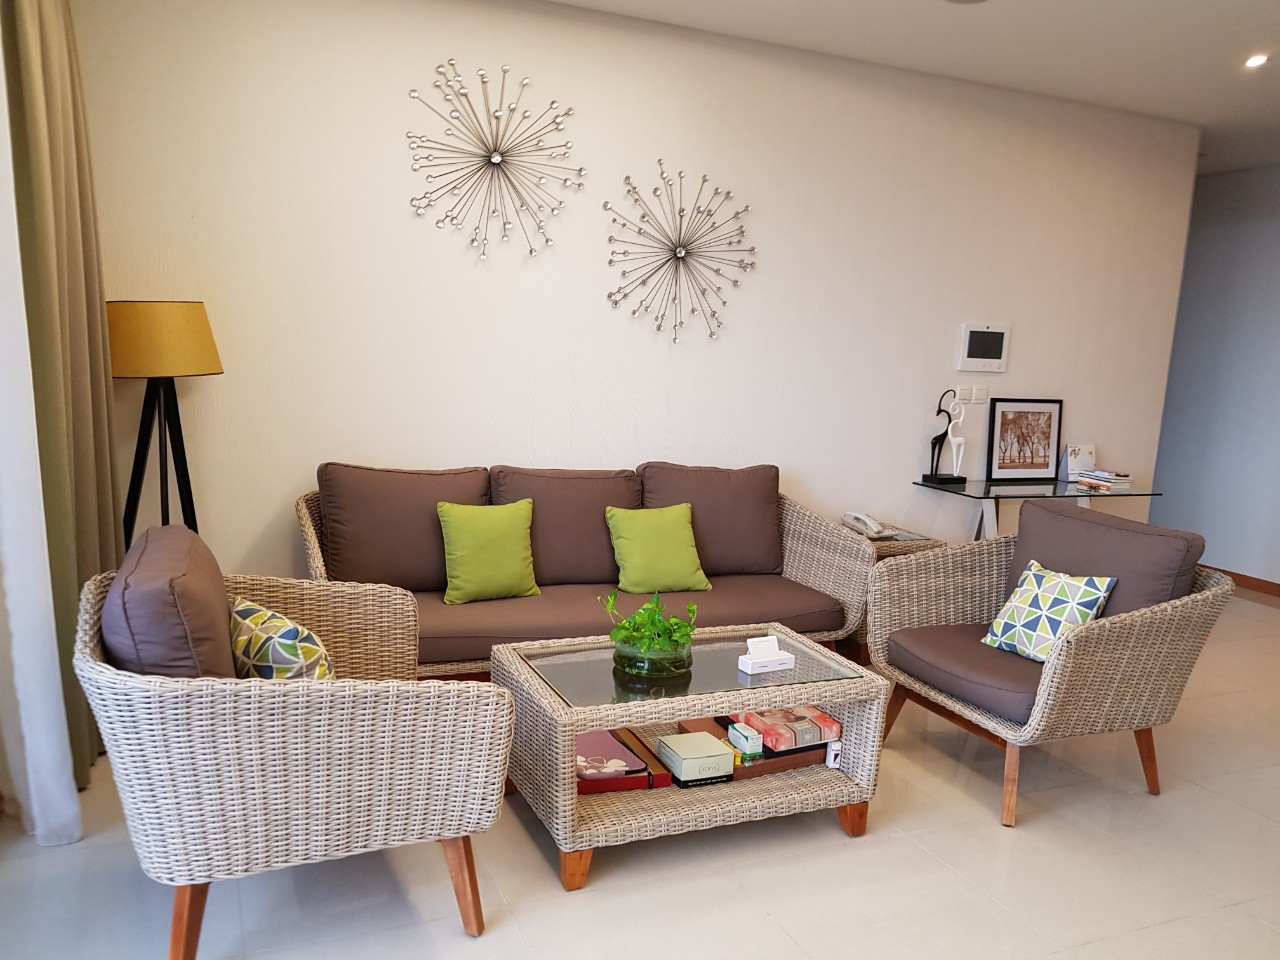 Xi Apartment Nice Furniture Good View in Thao Dien D206096 (12)